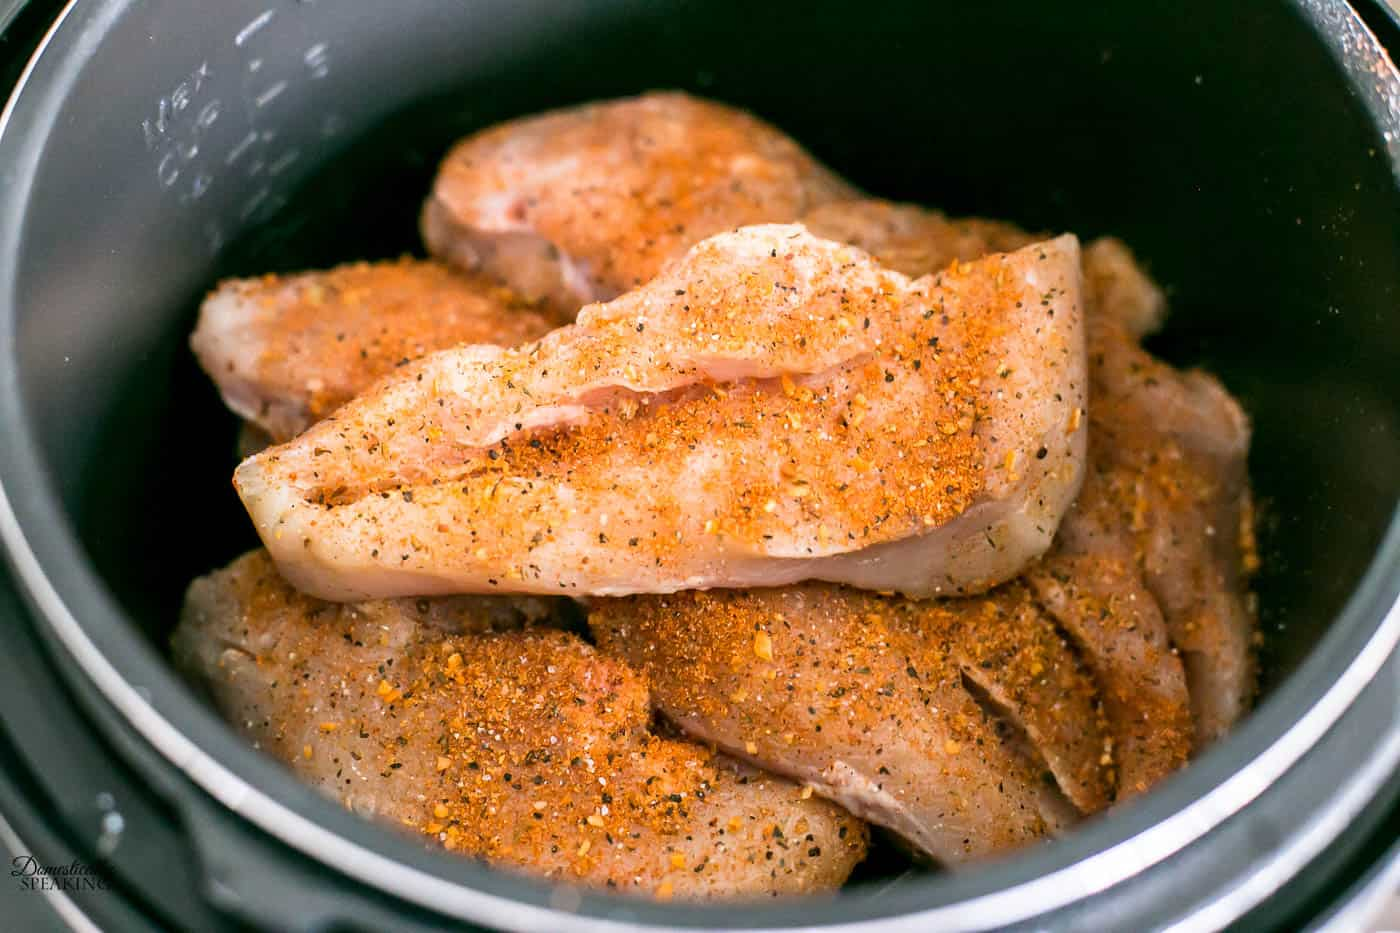 Seasoned chicken breast in pressure cooker.